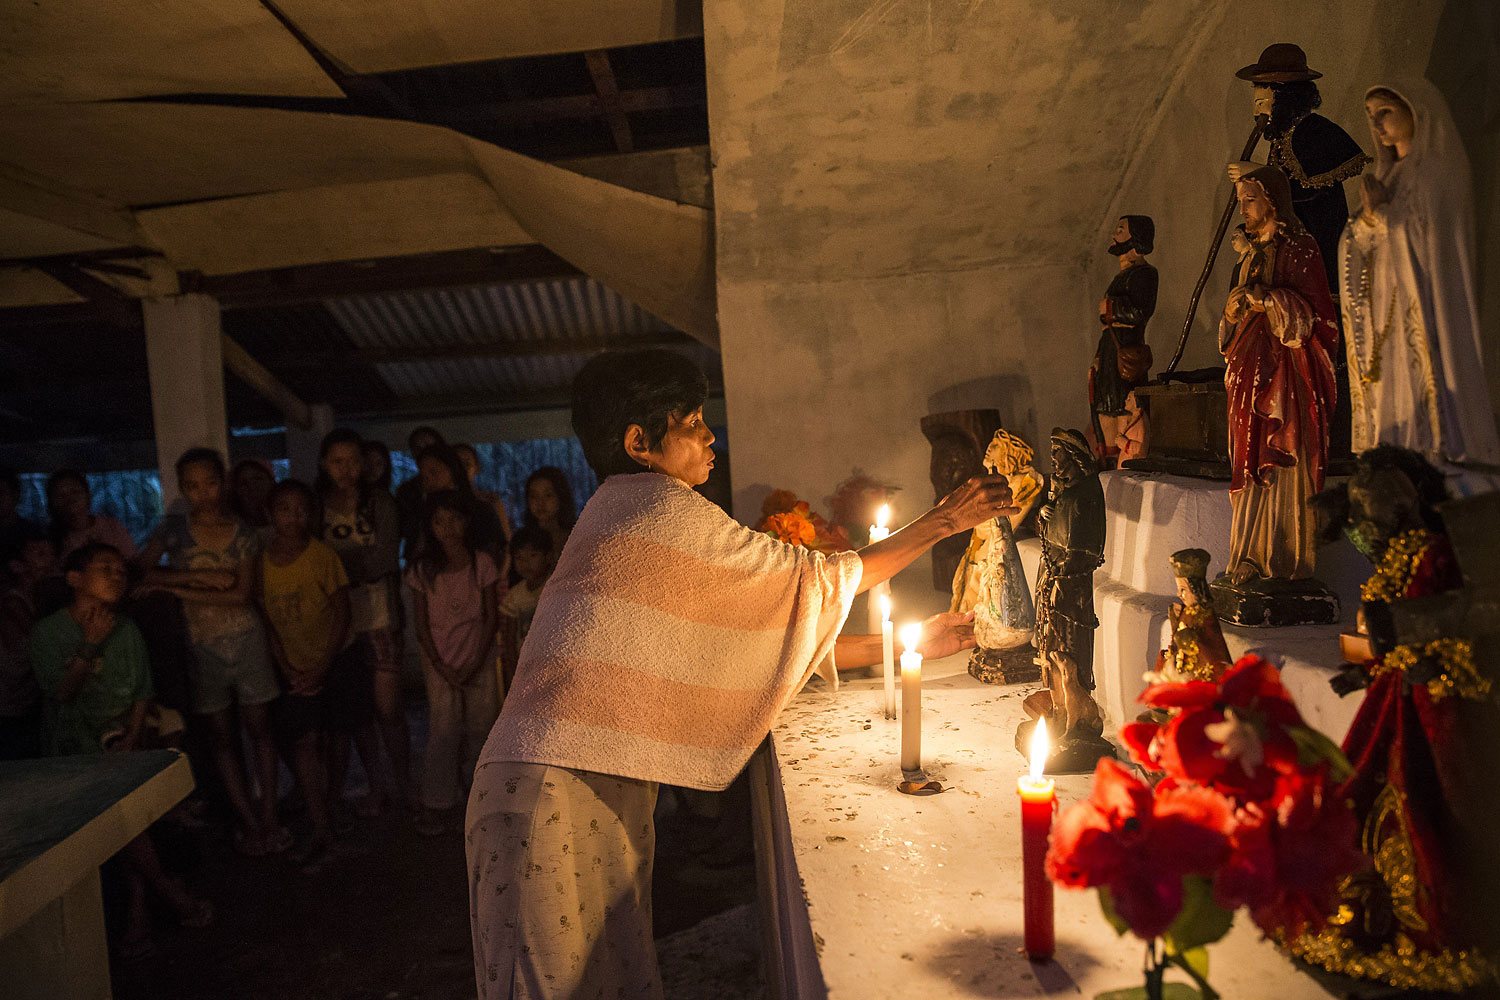 A woman arranges religious statues during a Latin mass ceremony at a local Chapel in Santa Rita township on November 22, 2013 in Eastern Samar, Philippines.